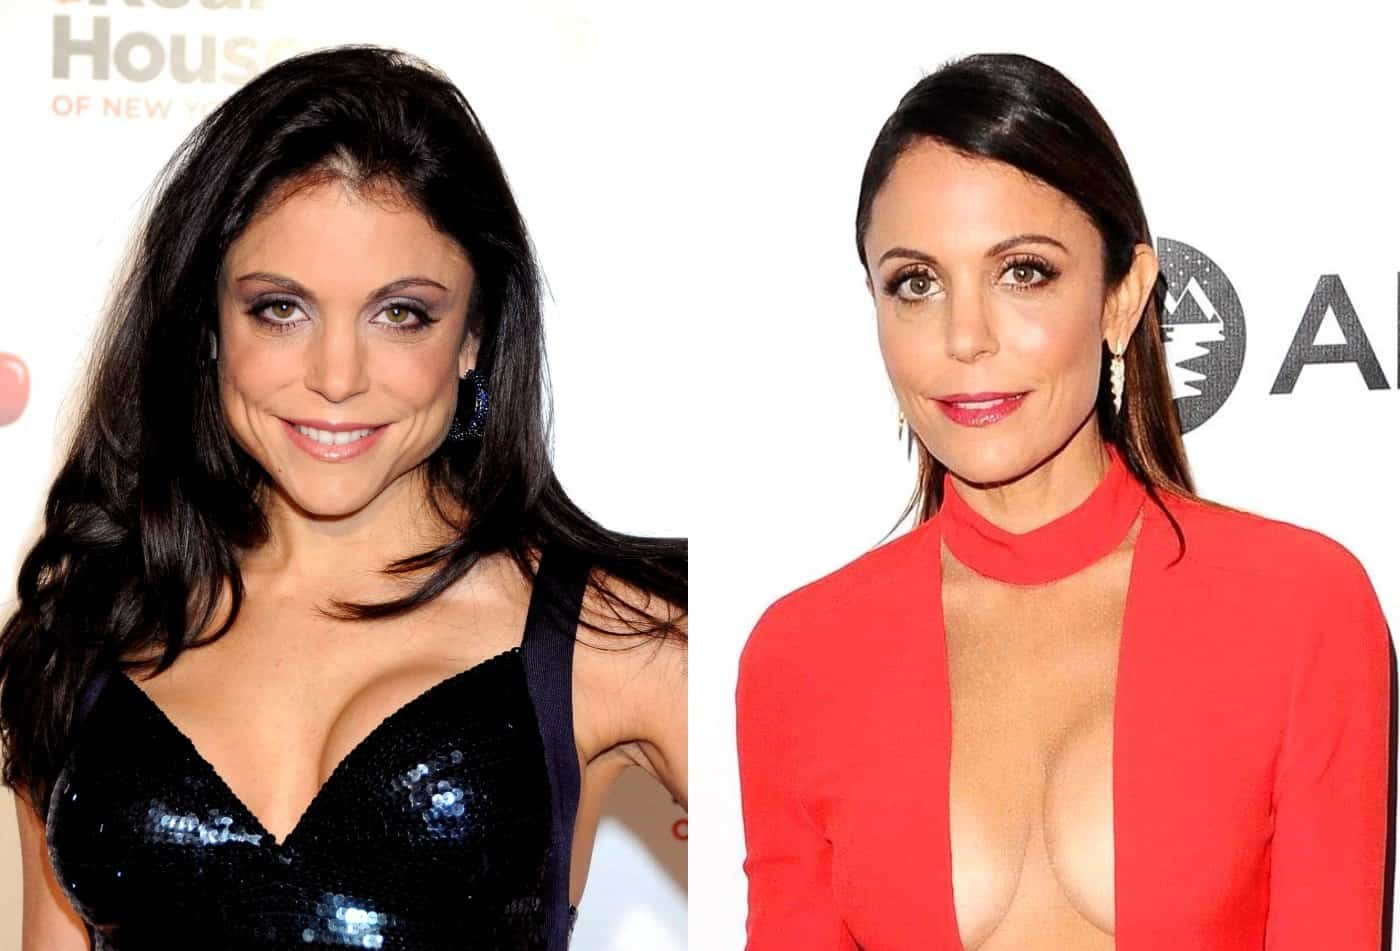 RHONY Bethenny Frankel Admits Plastic Surgery, See Before & After Pics!